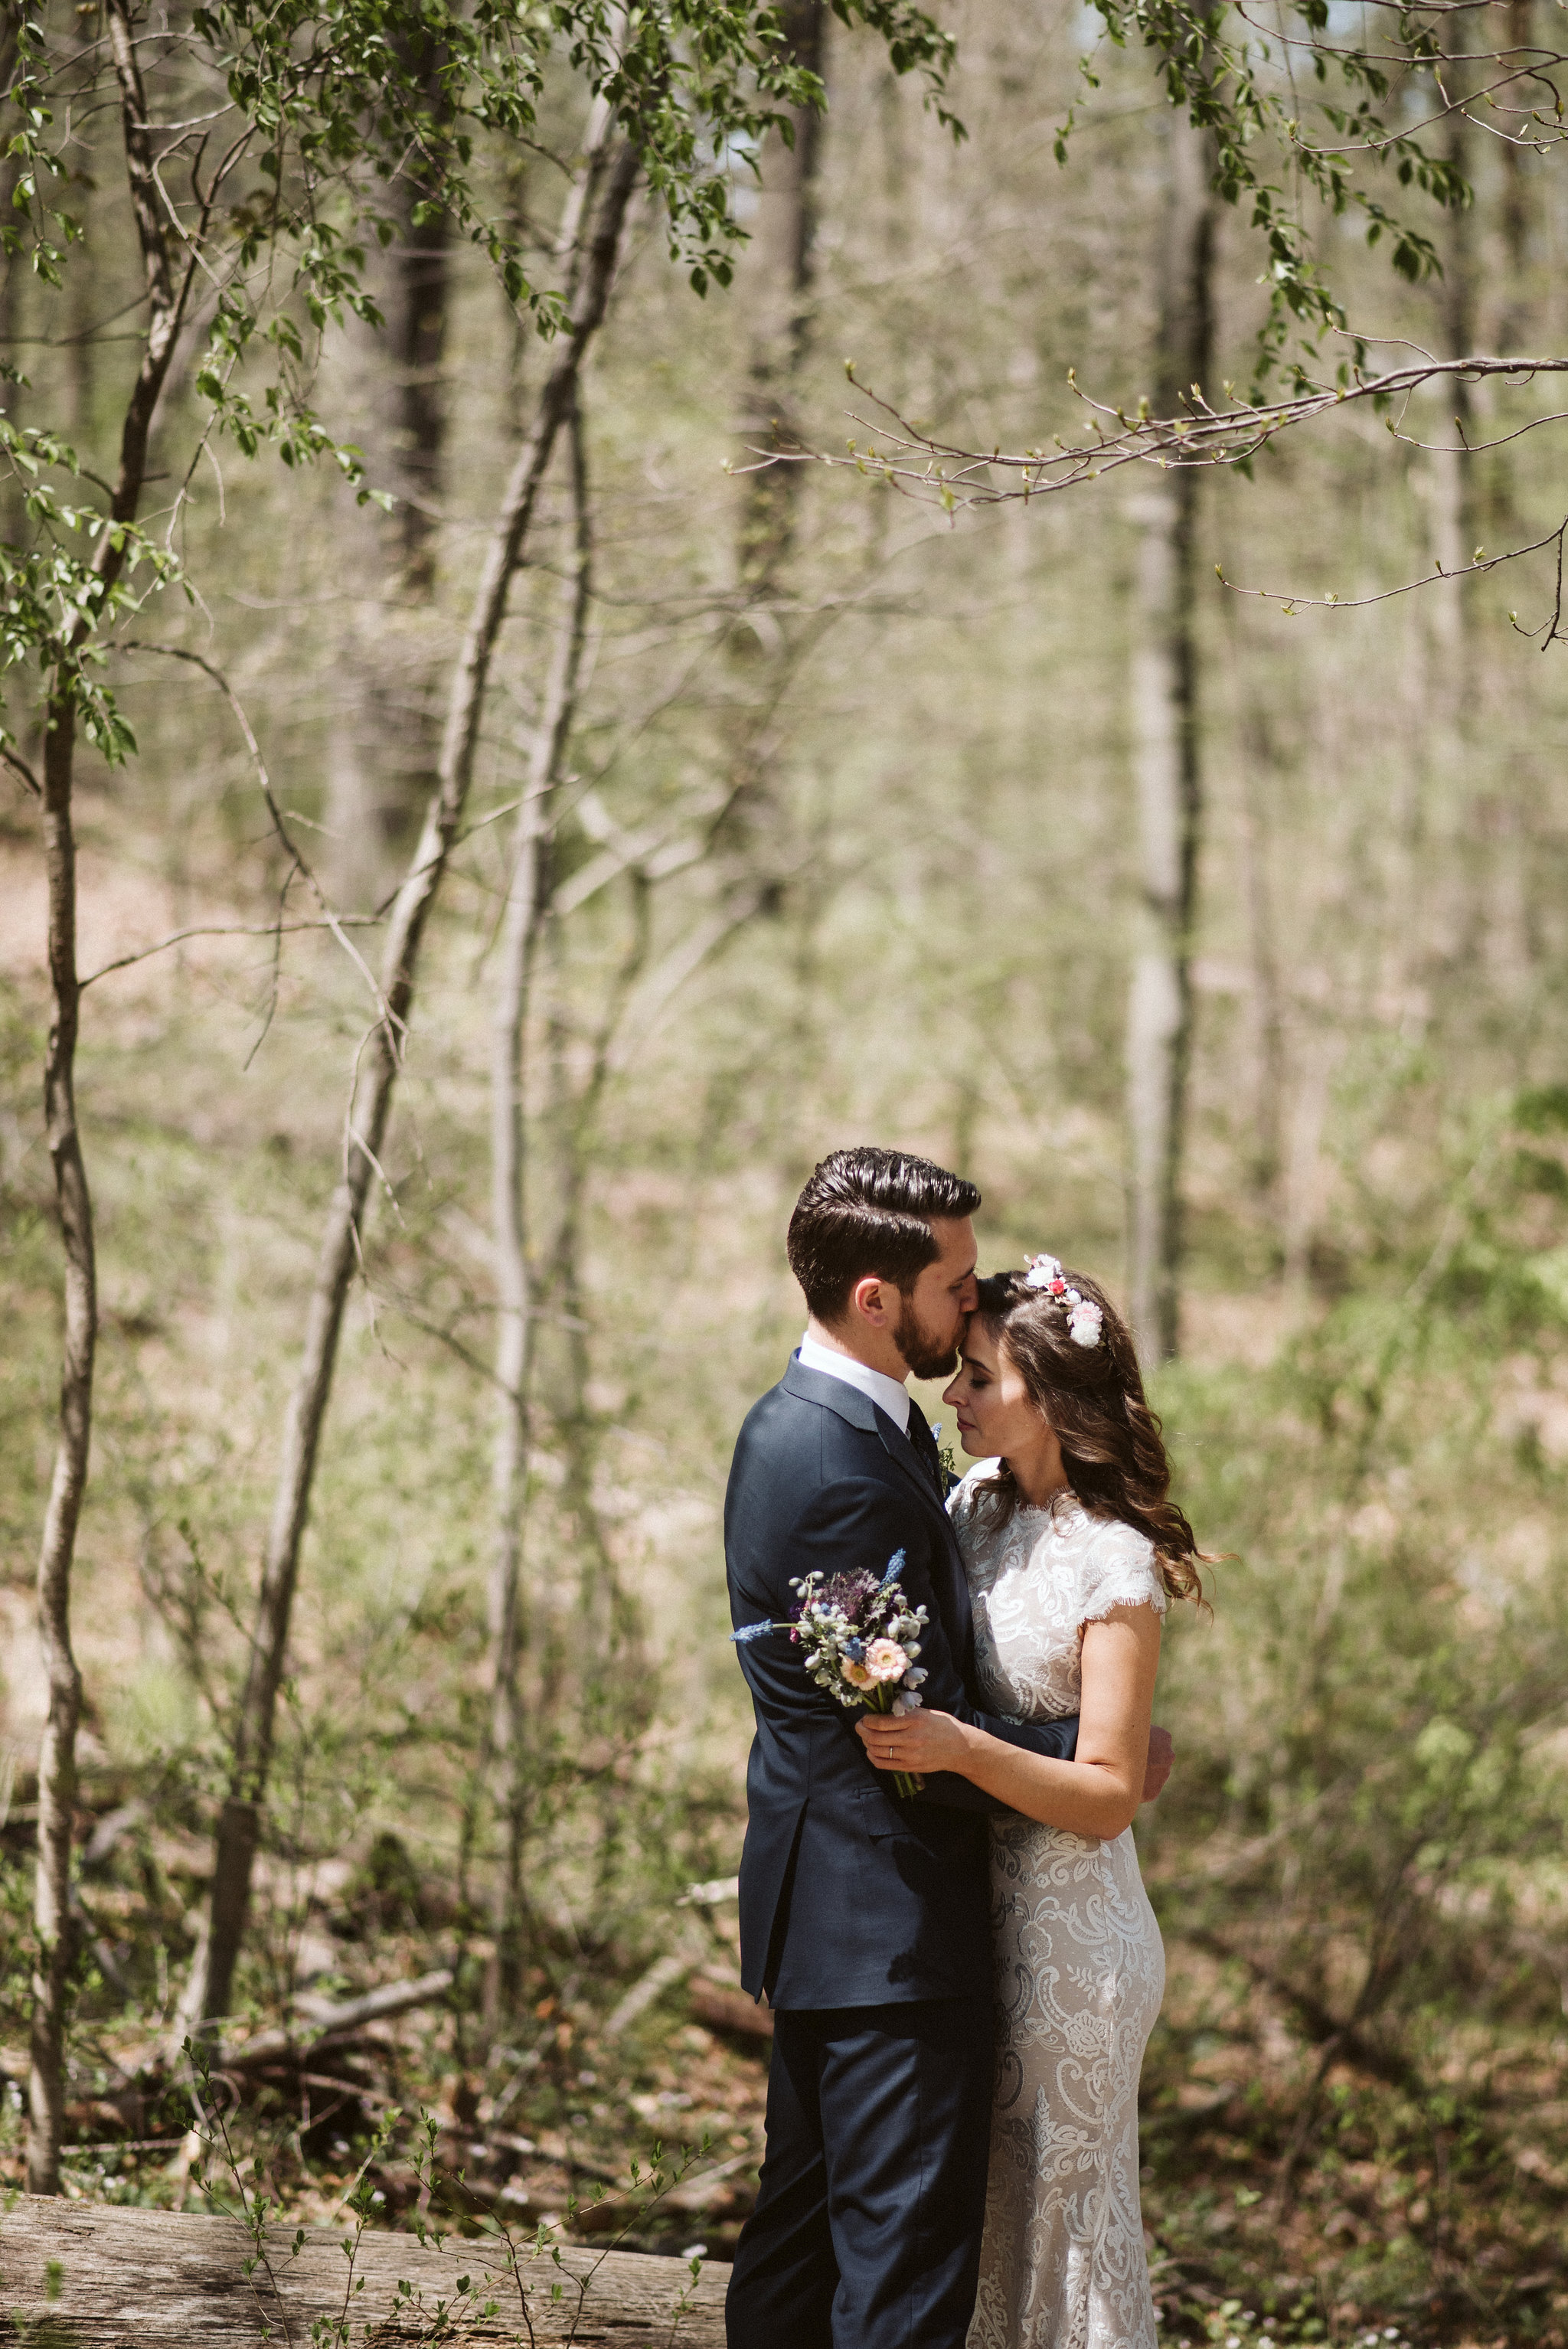 Spring Outdoor Wedding, Park, Baltimore Wedding Photographer, DIY, Classic, Upcycled, Garden Party, Romantic, Groom Kissing Bride on the Forehead, Sweet Candid Photo, Flower Crown